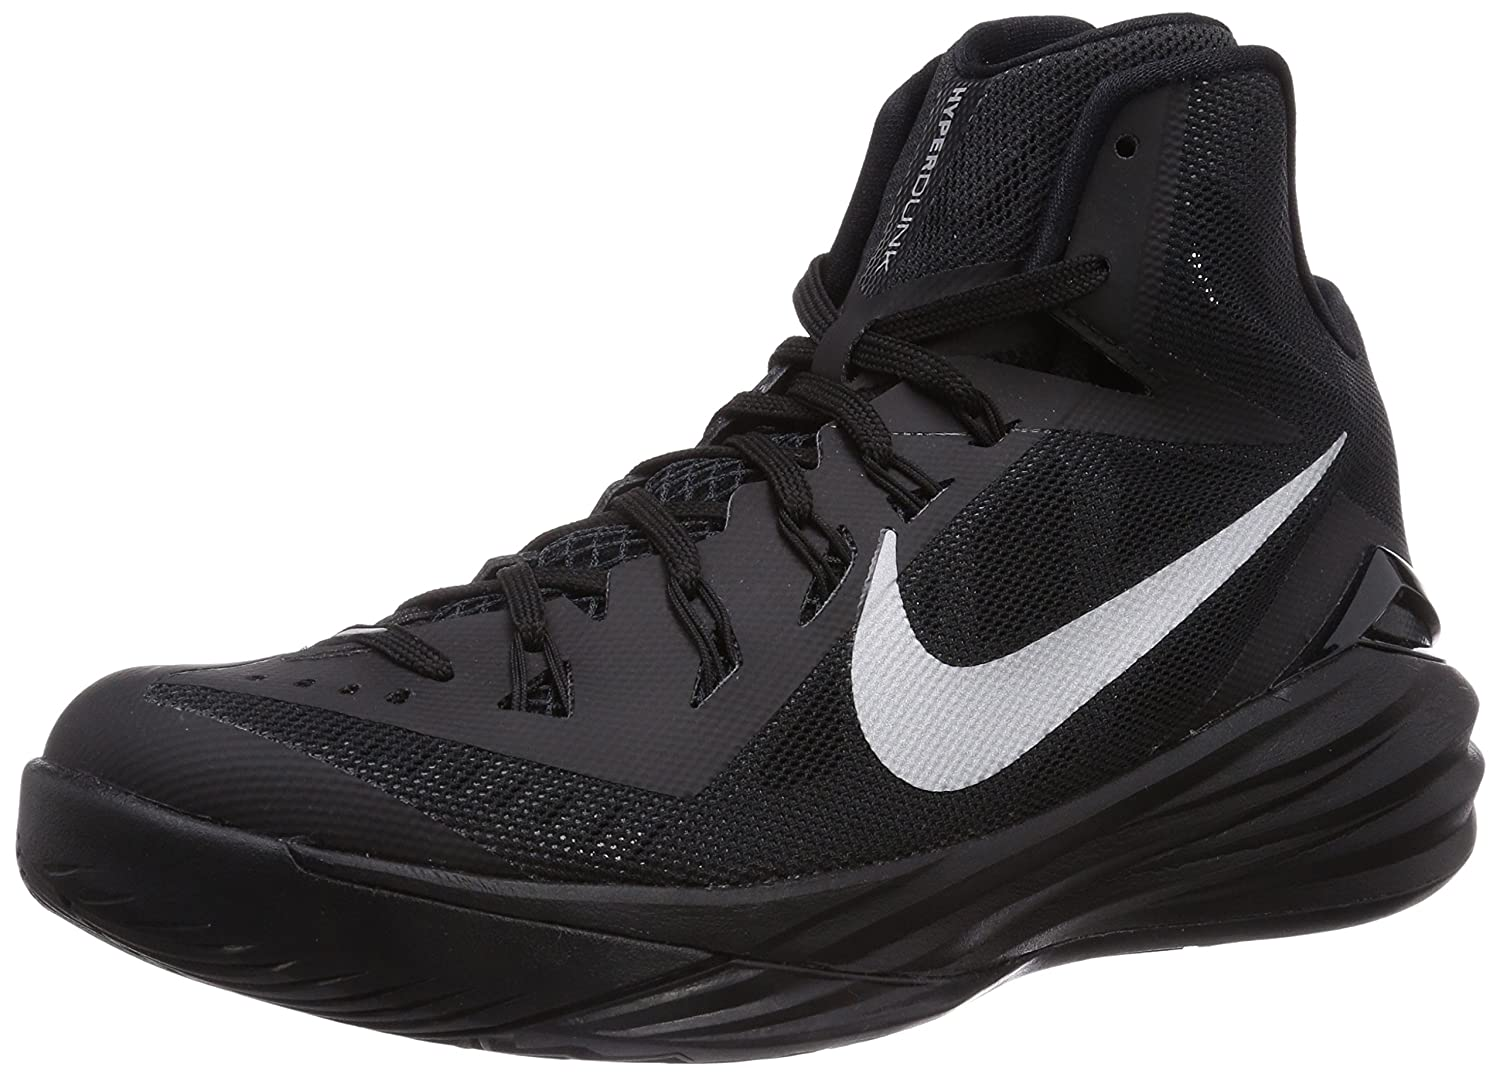 cheaper e87c2 06886 ... low cost amazon nike hyperdunk 2014 mens basketball shoe 13 shoes 8606c  6ea7c